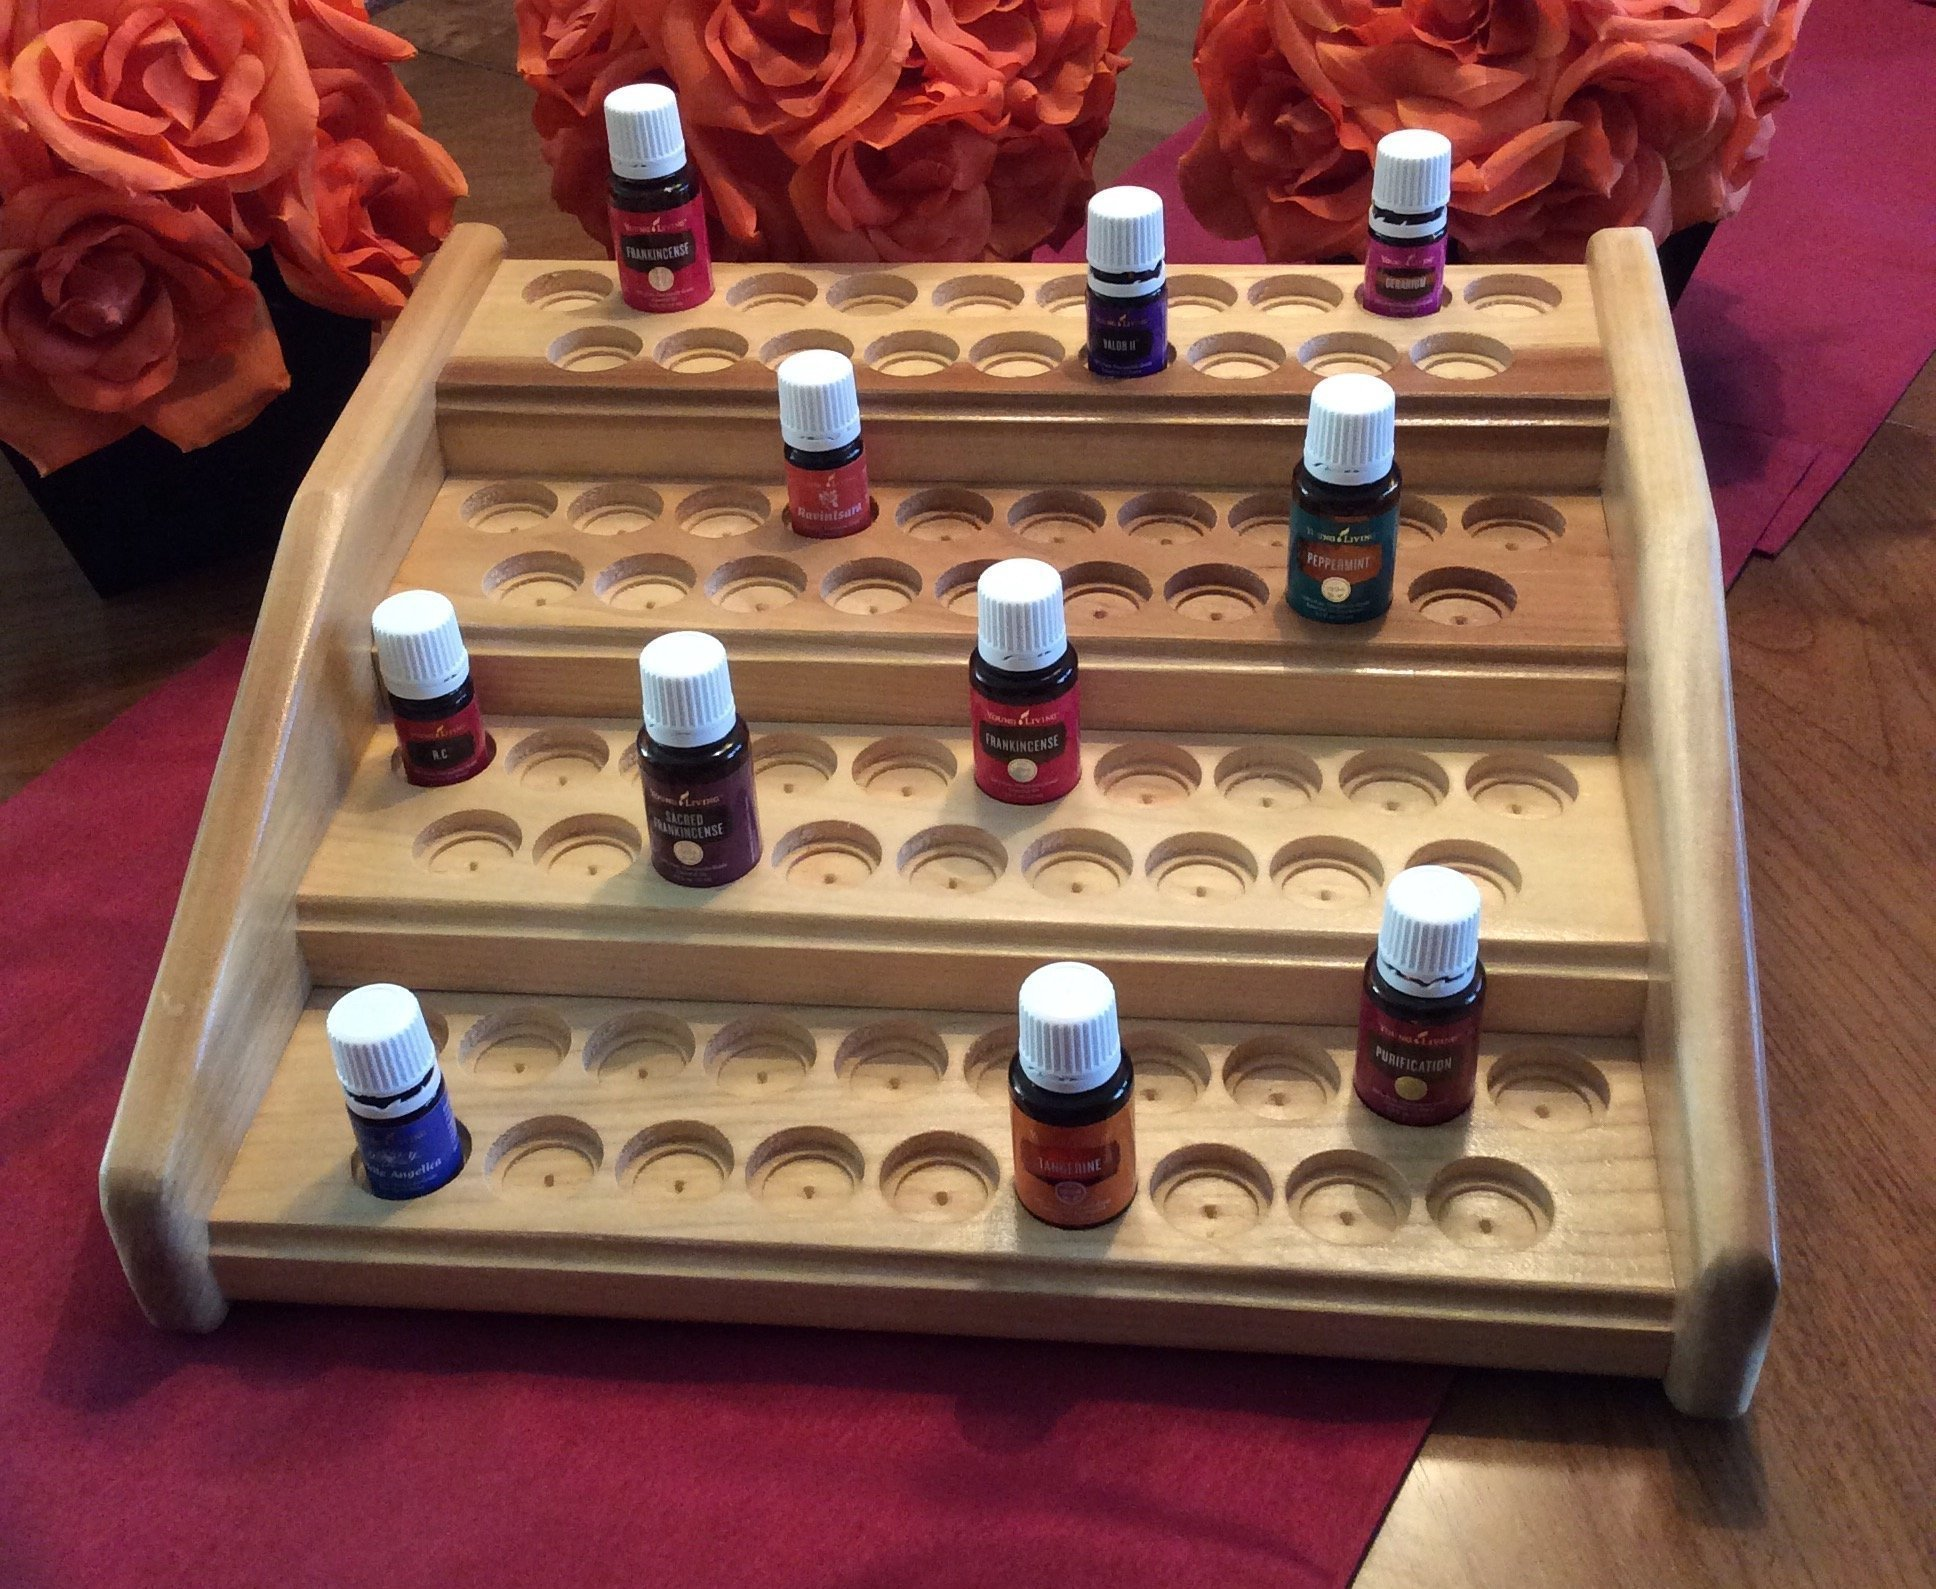 Essential oil rack / holder, EO storage stand for 76 bottles, oil organizer w/ dual bottle sizing, EO display for 5ml and 15ml bottles, 4 colors! Great fit for Young Living or doTerra oils!